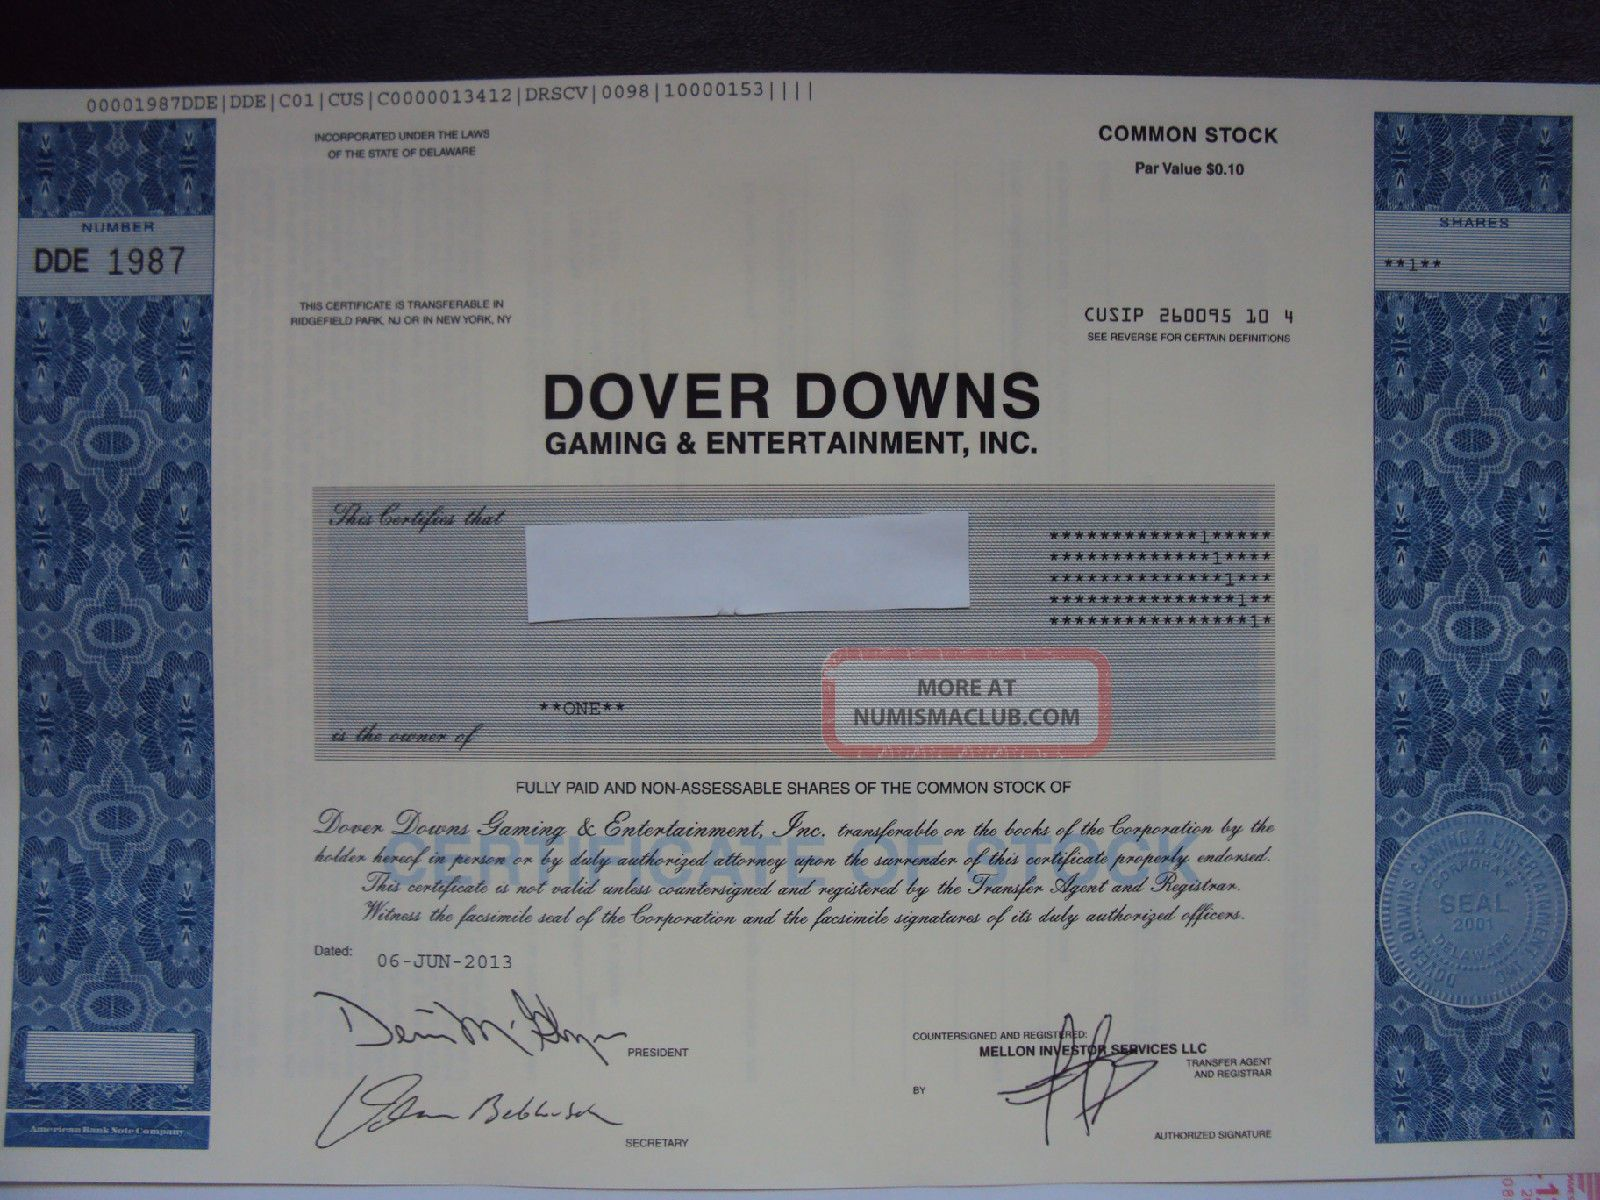 Dover Downs Gaming & Entertainment Stock Certificate Stocks & Bonds, Scripophily photo